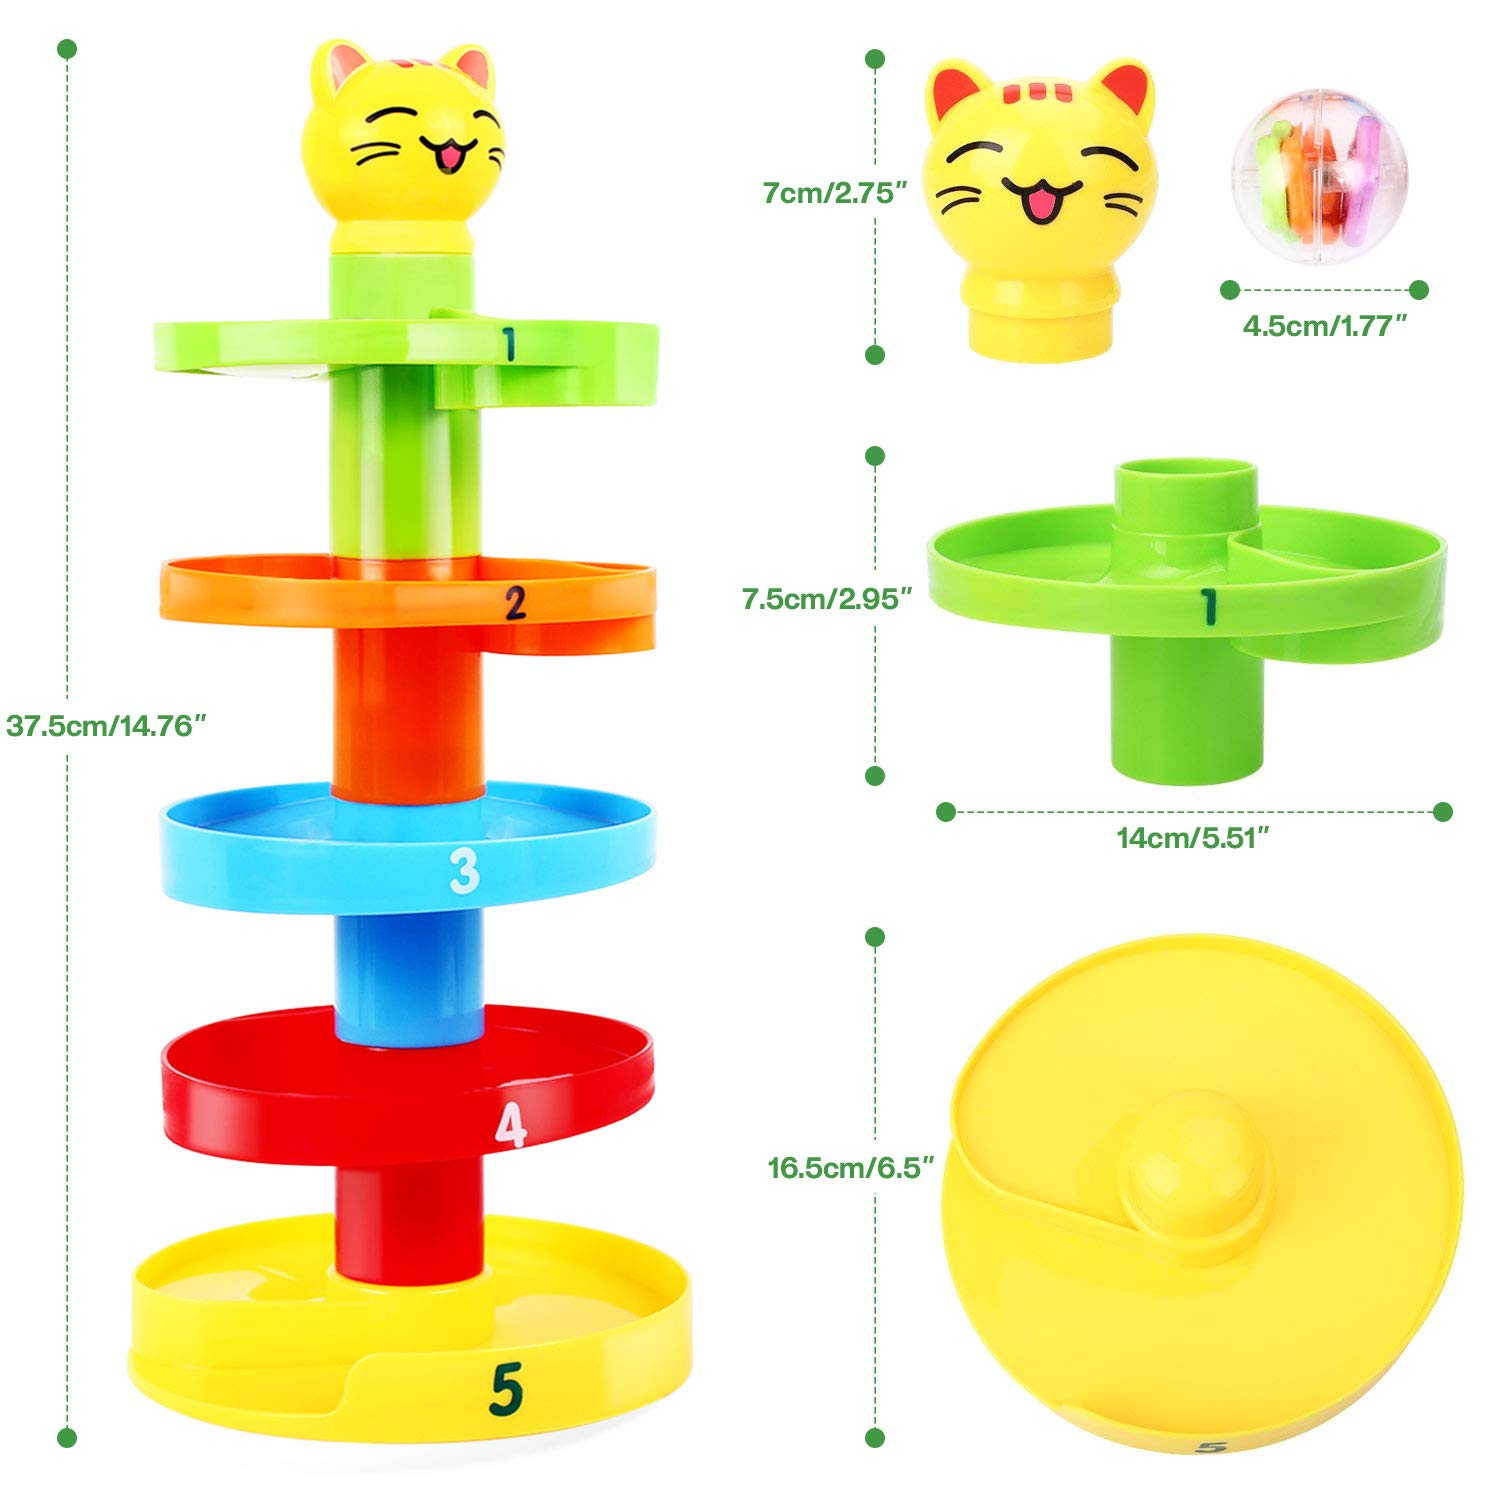 Peradix Swirl Ball Ramp Toddlers Ball Drop Toy Educational Puzzle Rolling Ball Bell Stacker for Kids Activity Center Games (Cat)